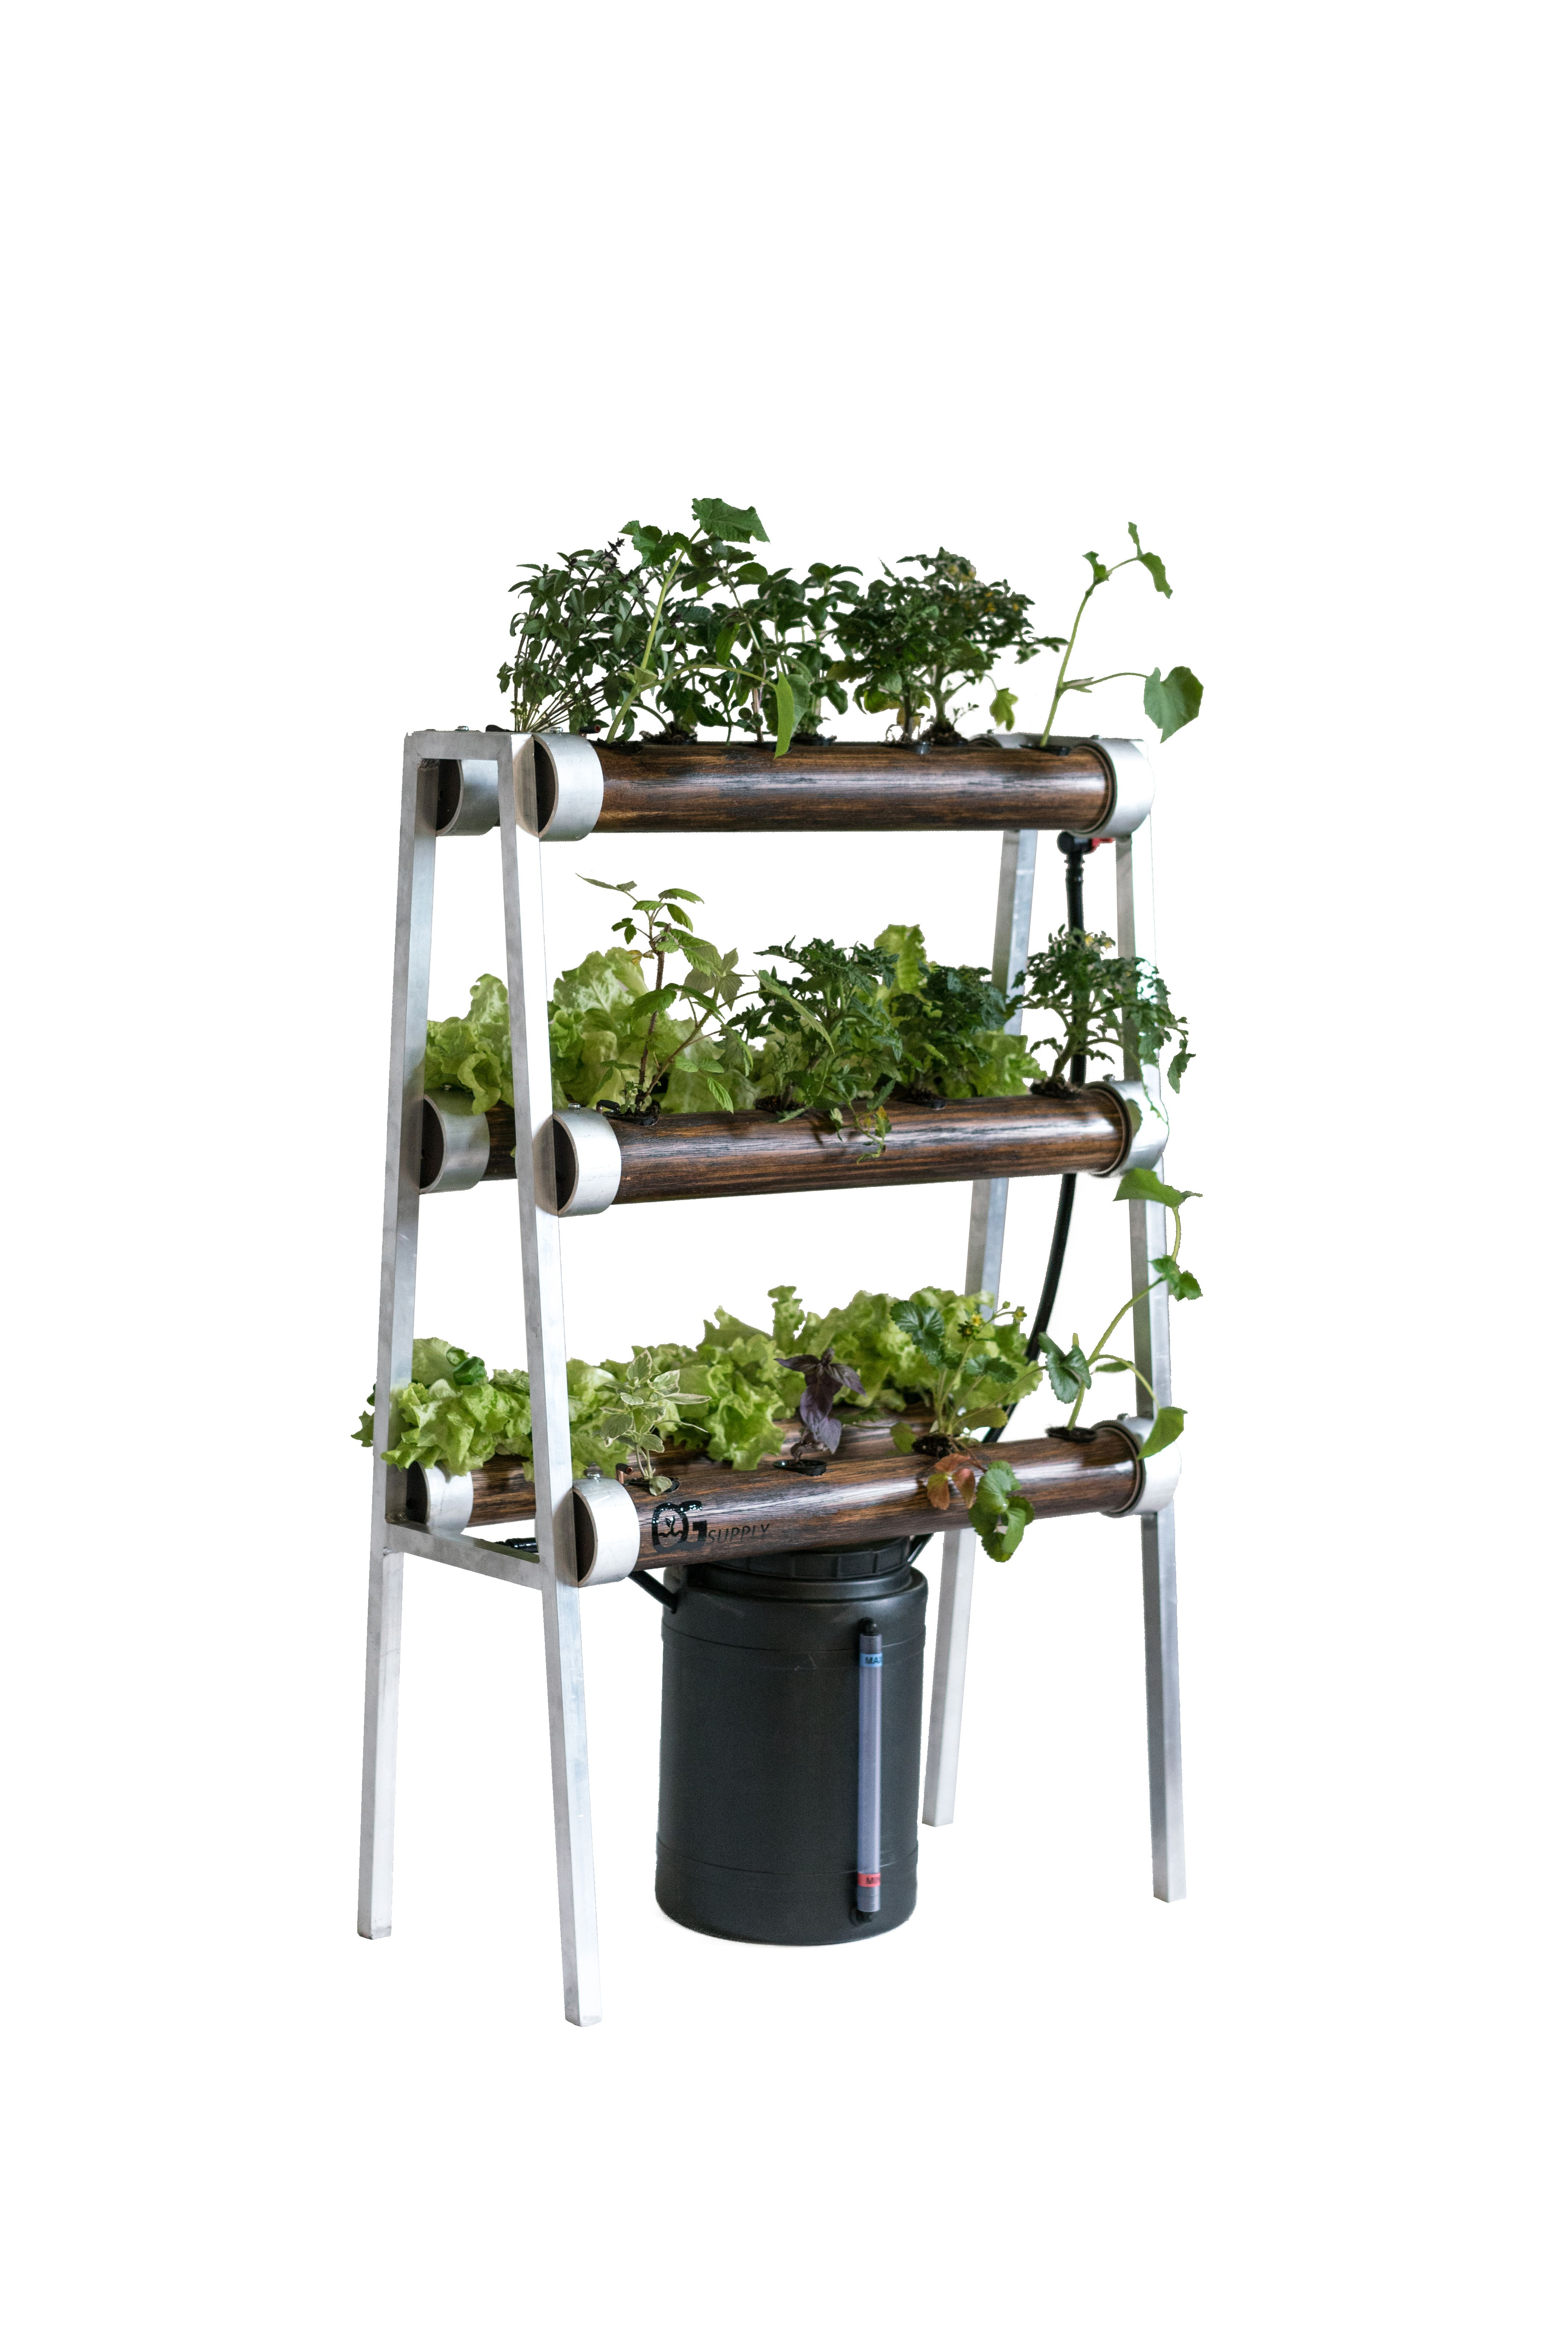 Elegant Hydroponics Urban Garden. This new concept for growing ...